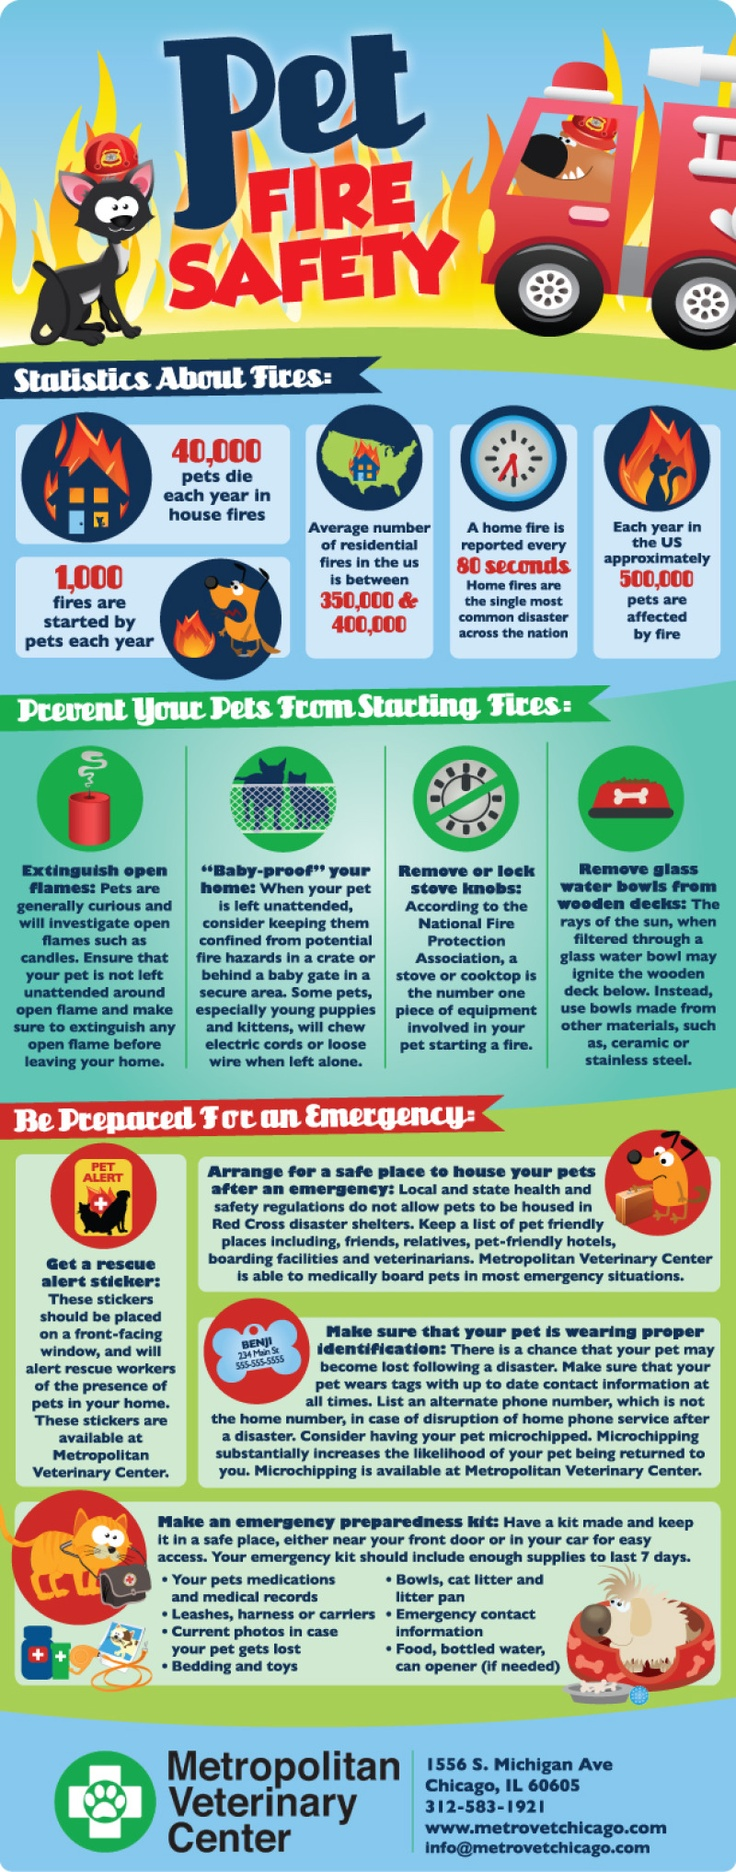 179 best Fire safety images on Pinterest | Fire safety, Fire ...